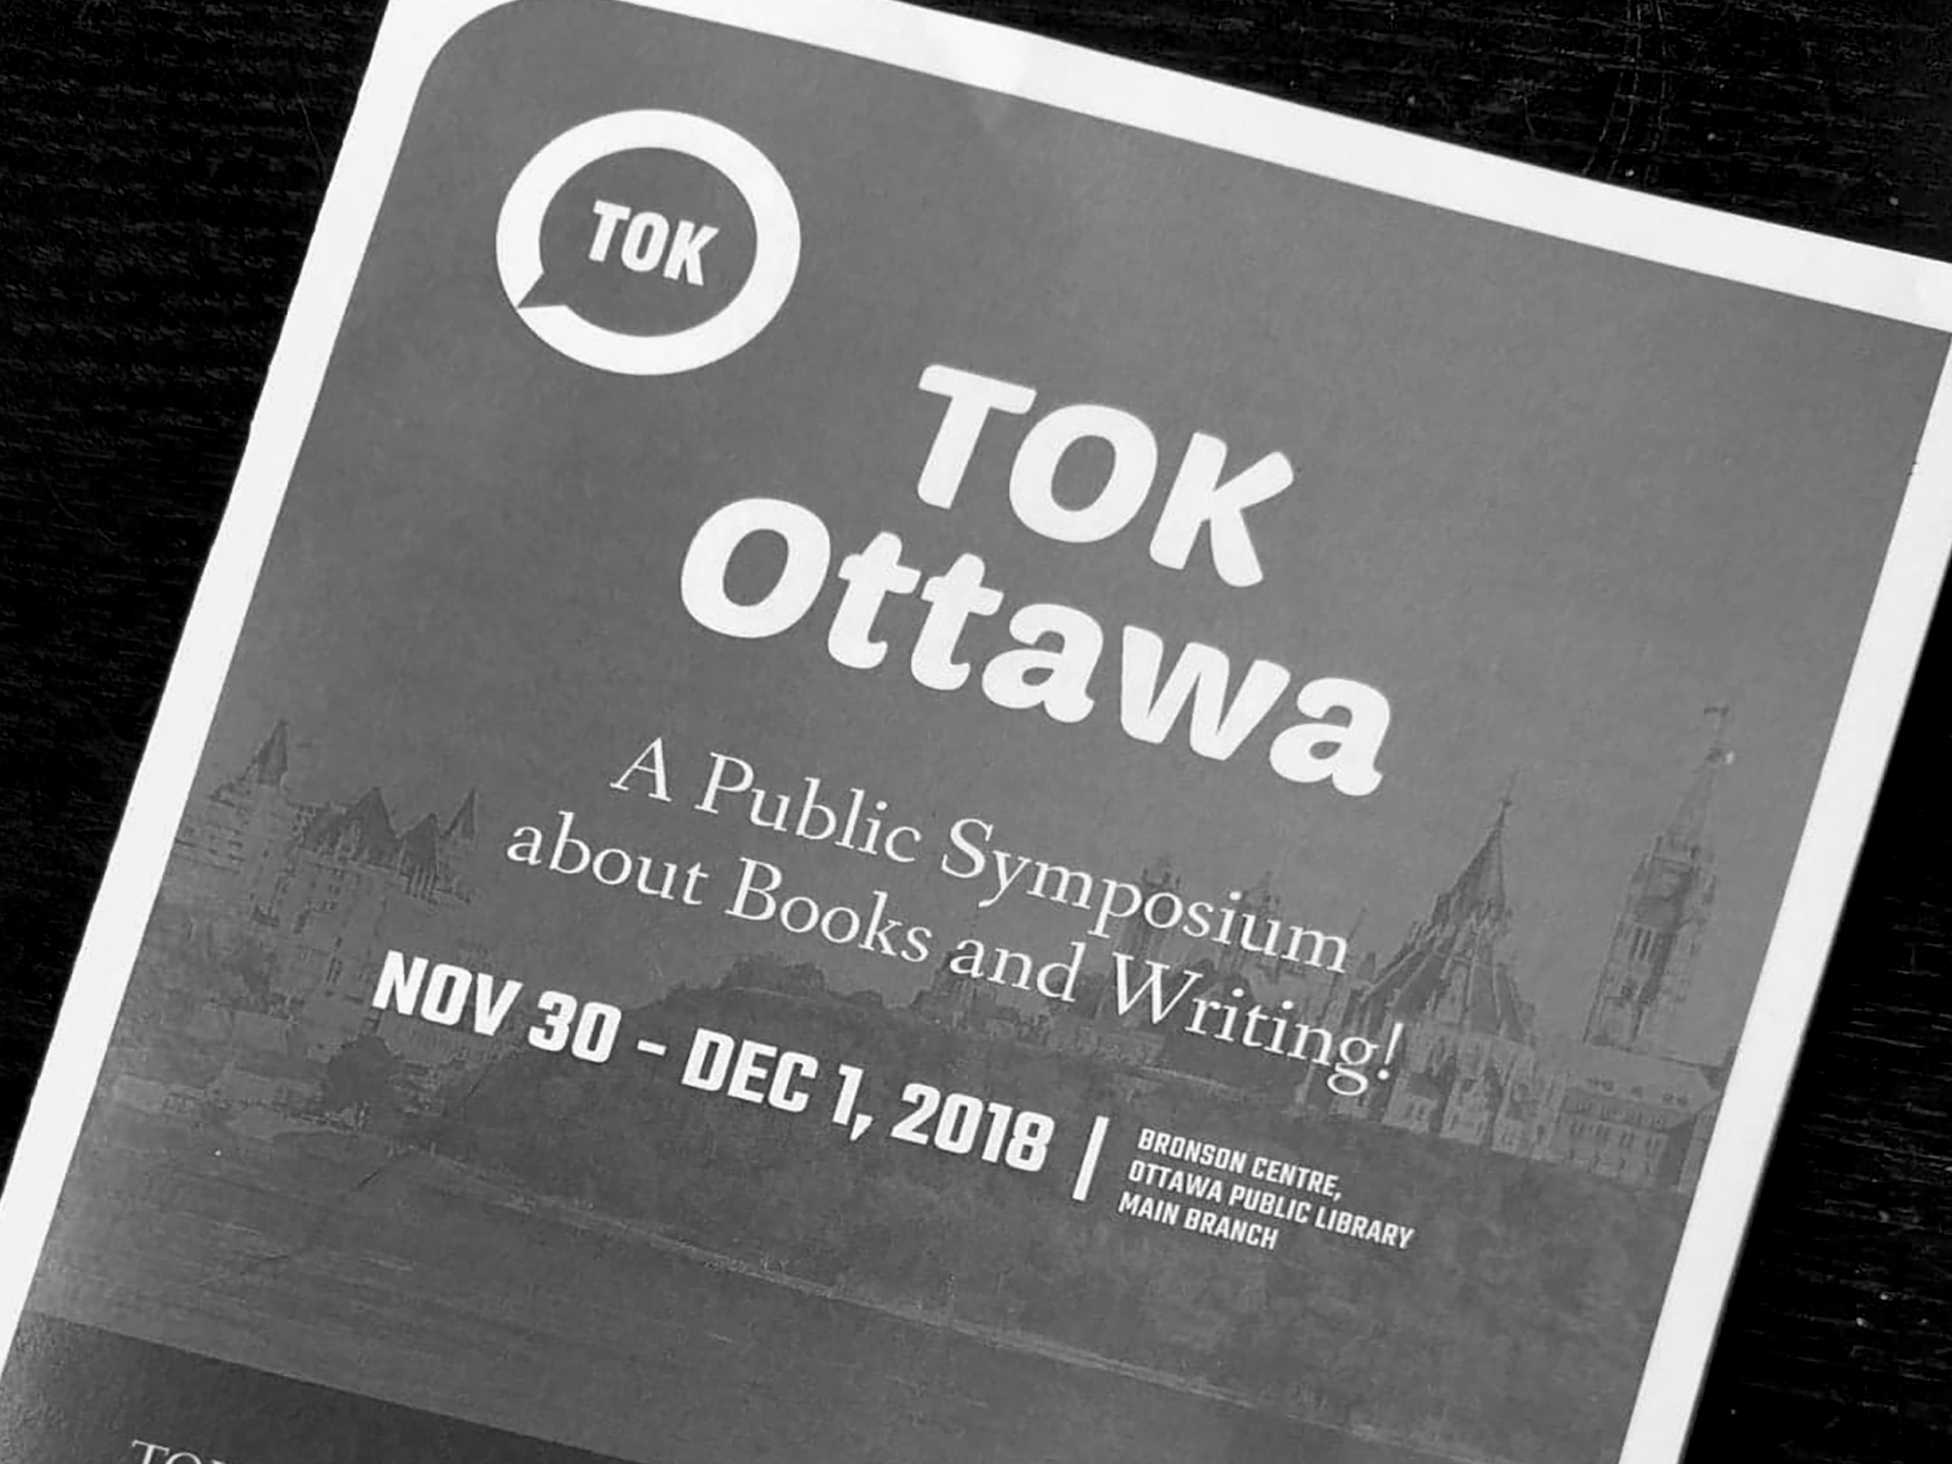 TOK Ottawa Symposium program (a paper booklet)